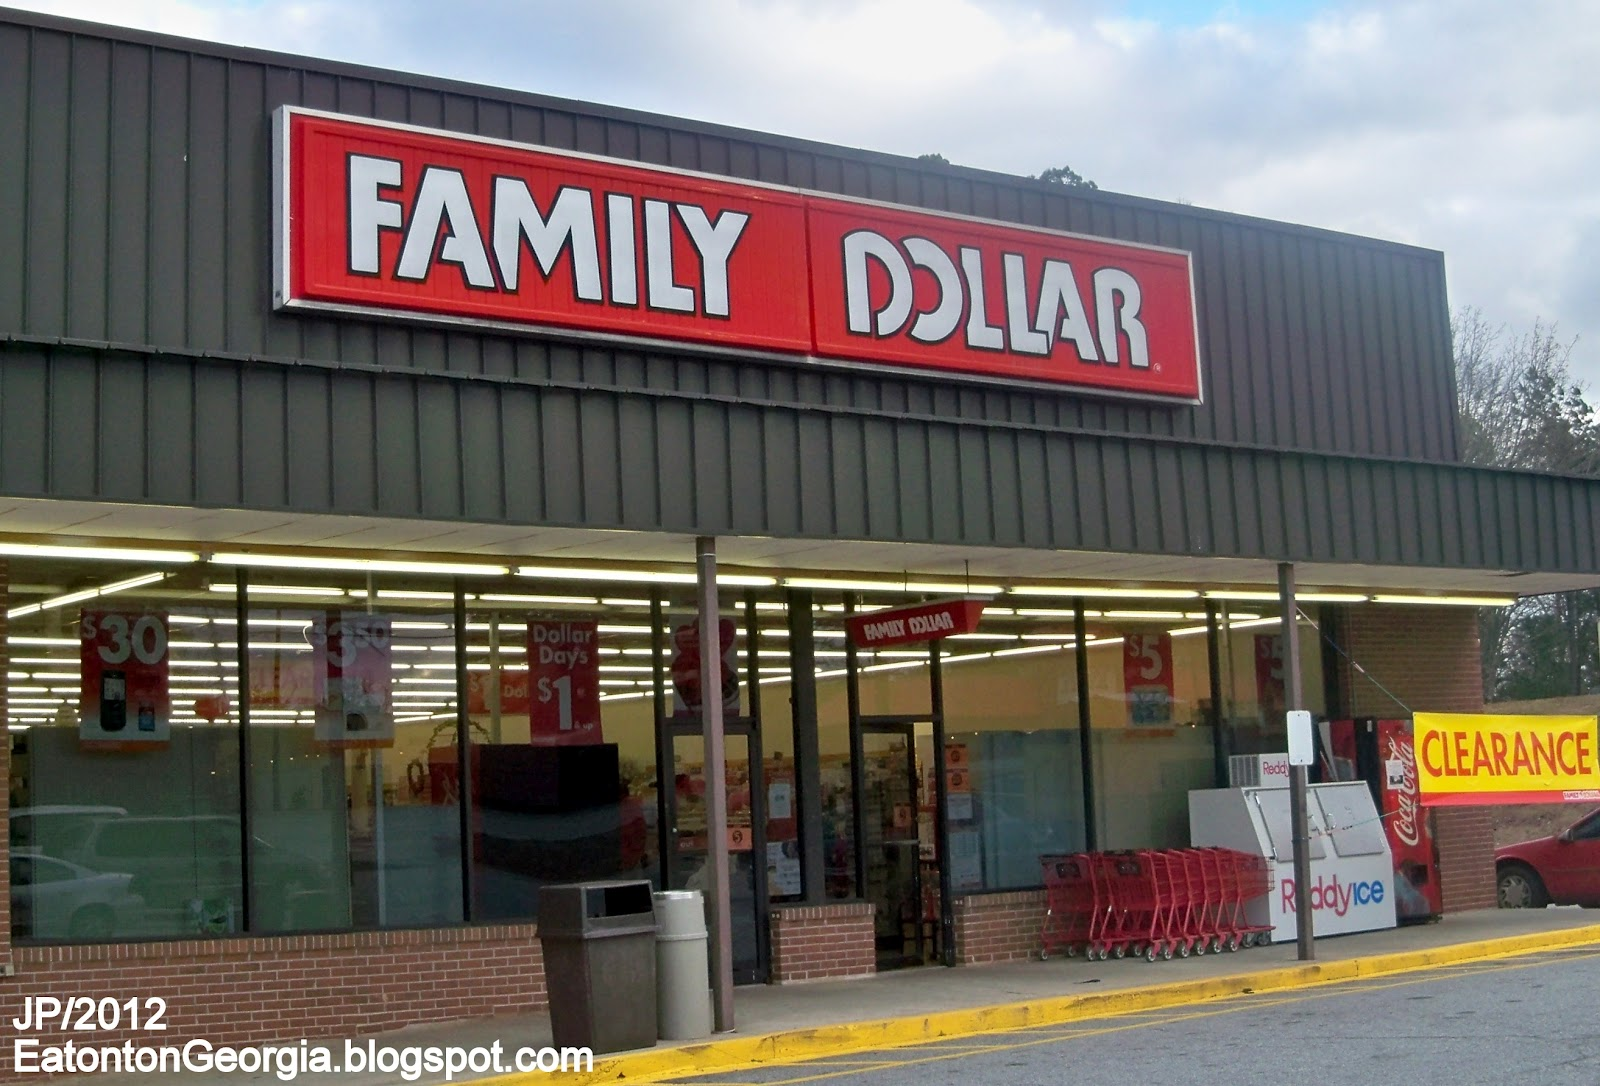 family dollar Want to apply for family dollar jobs for employment at family dollar, get the online job application and apply now.